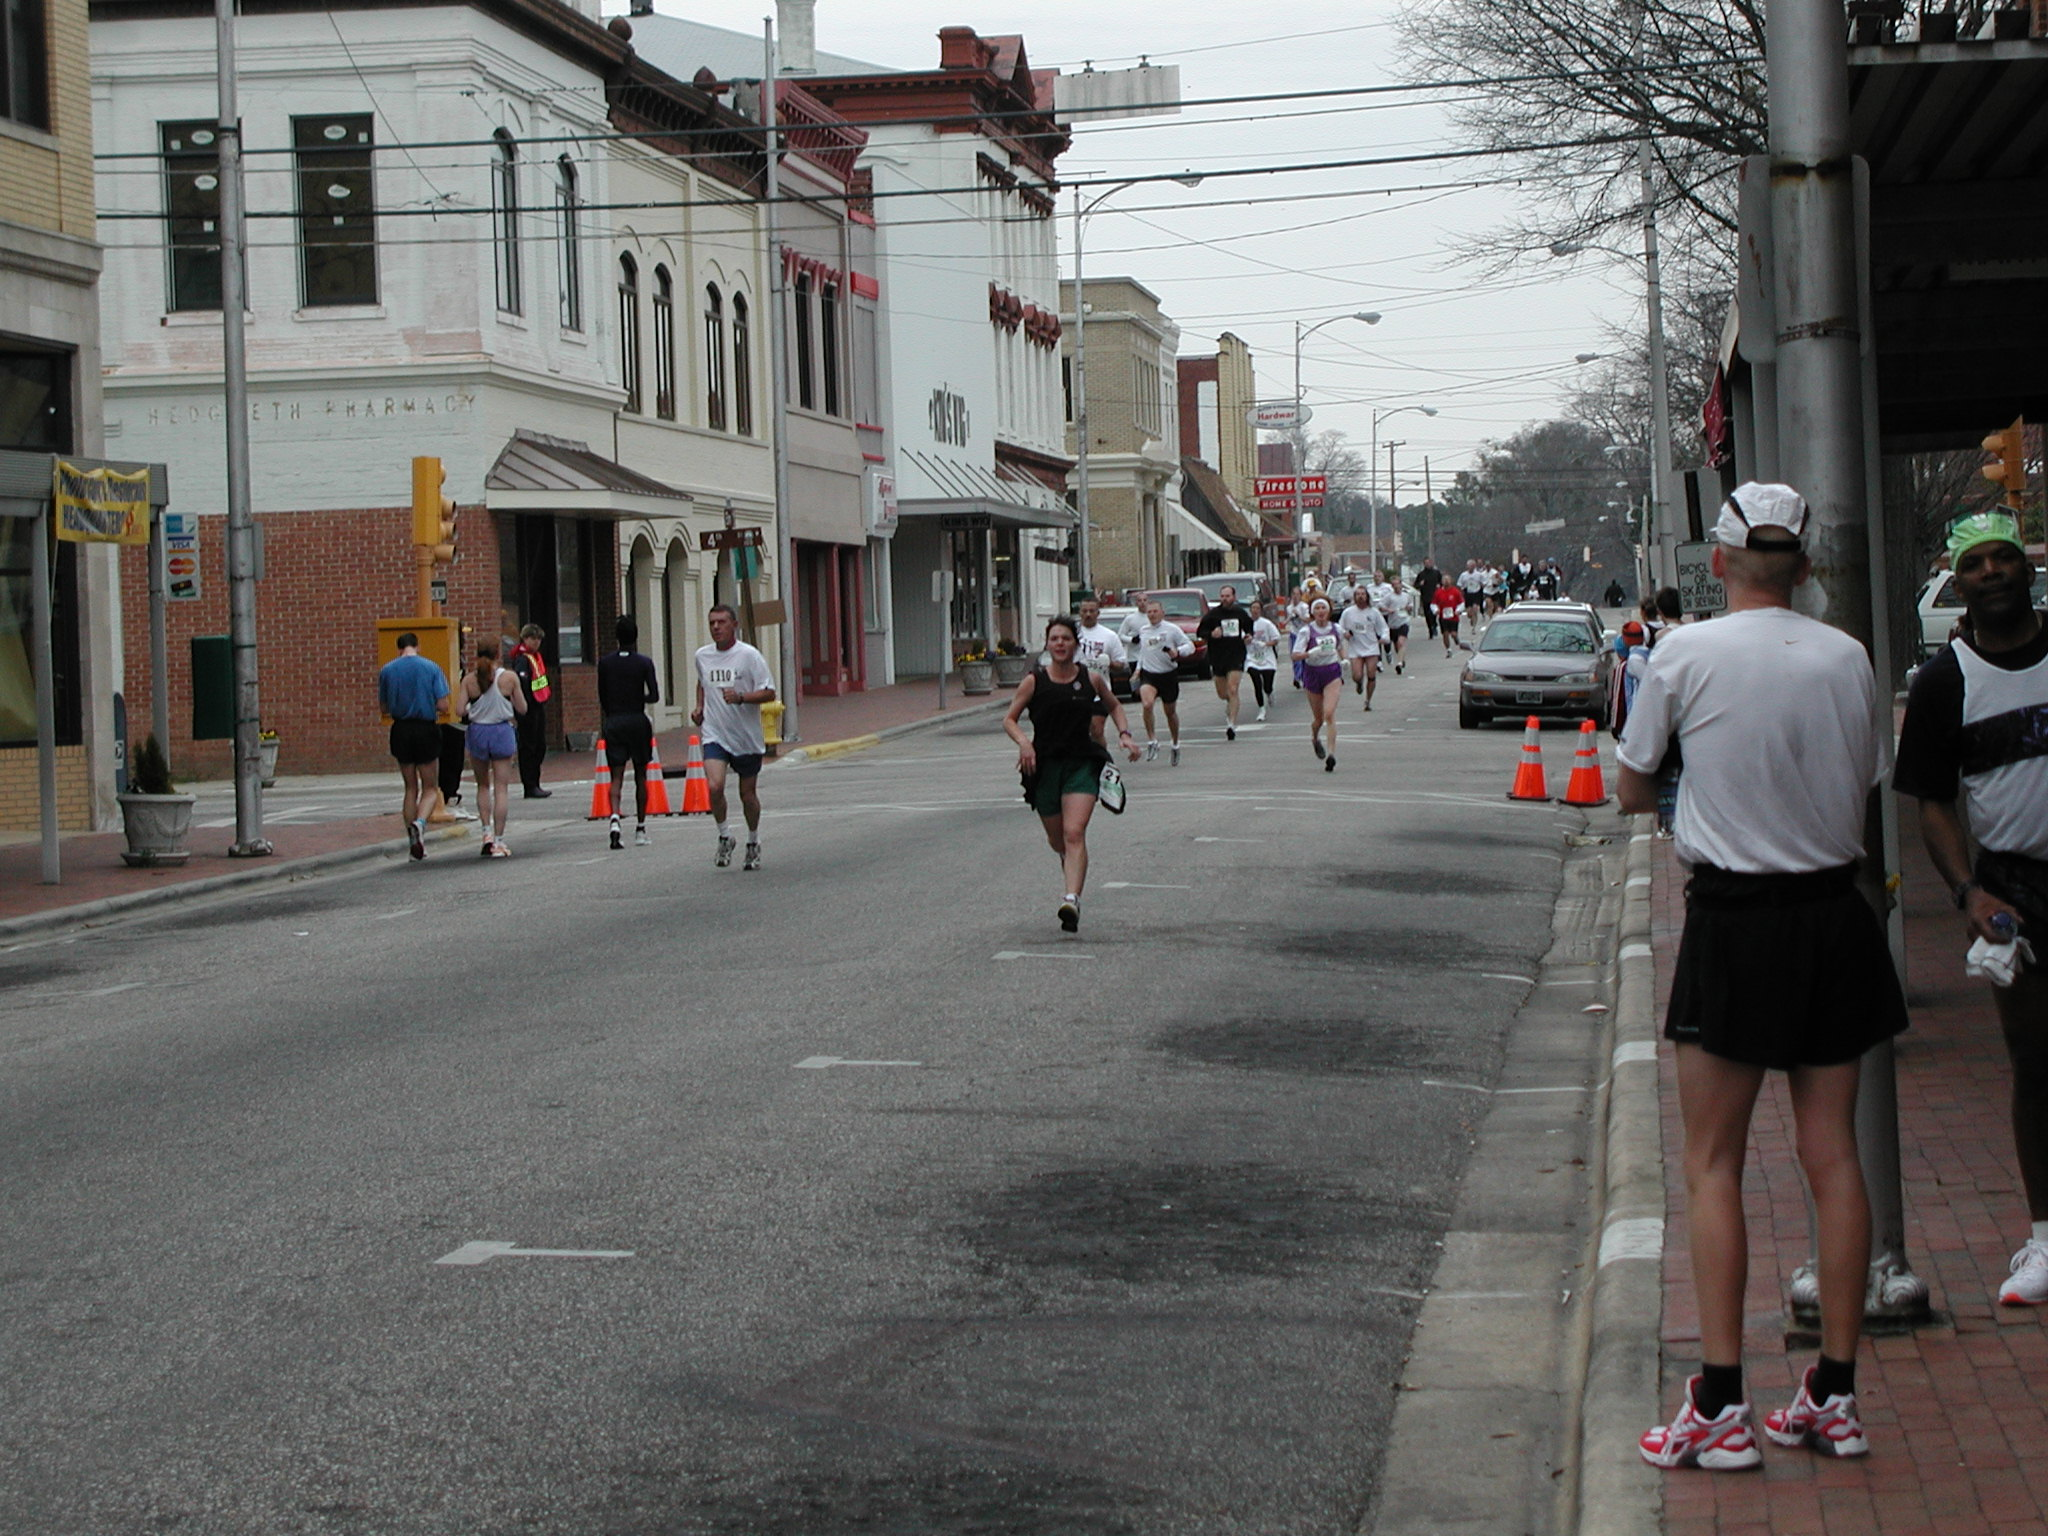 A road race in downtown Lumberton, NC.